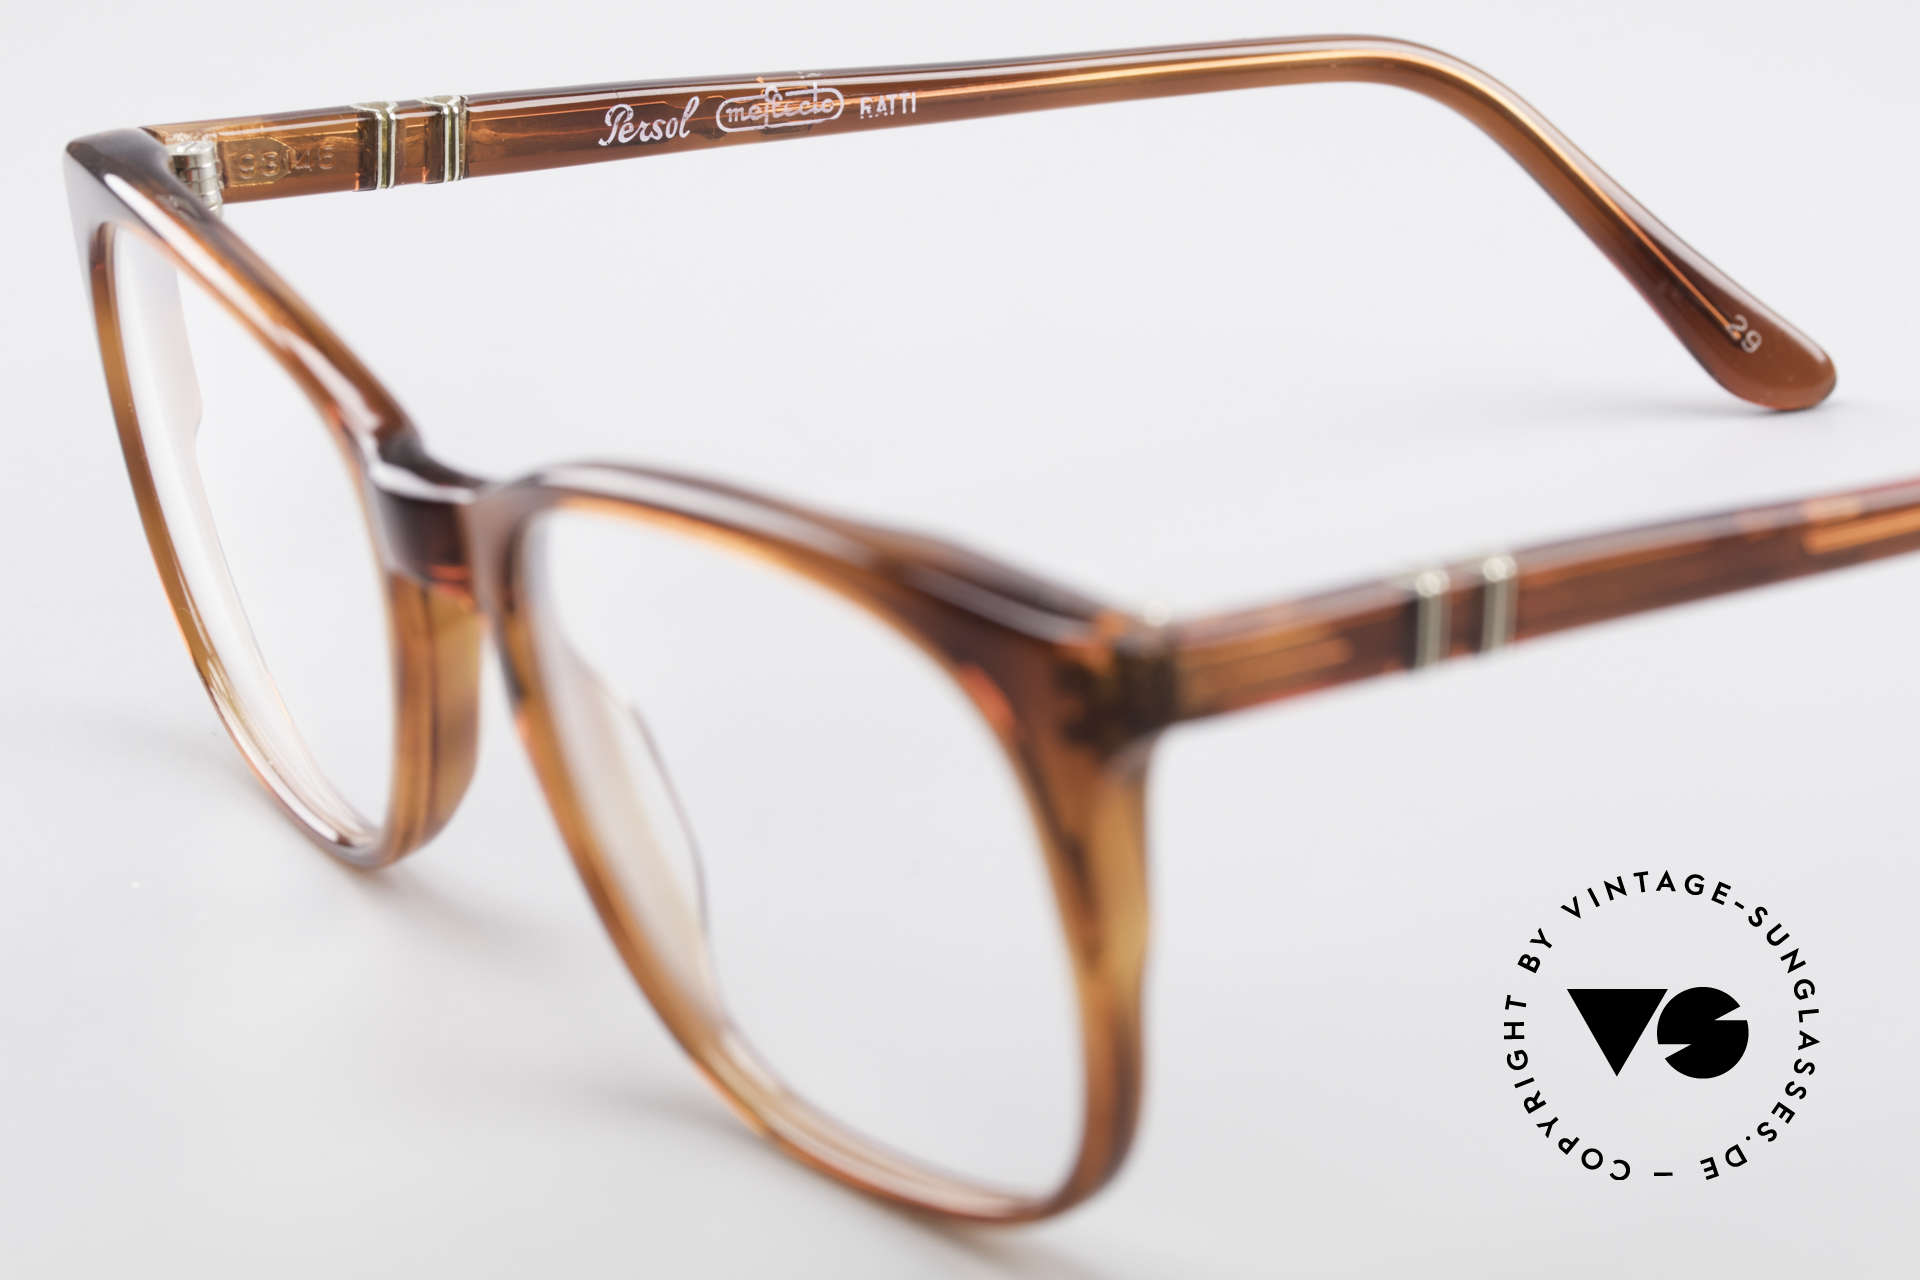 Persol 93145 Ratti Small Classic 80's Eyeglasses, never worn (like all our vintage PERSOL RATTI), Made for Men and Women